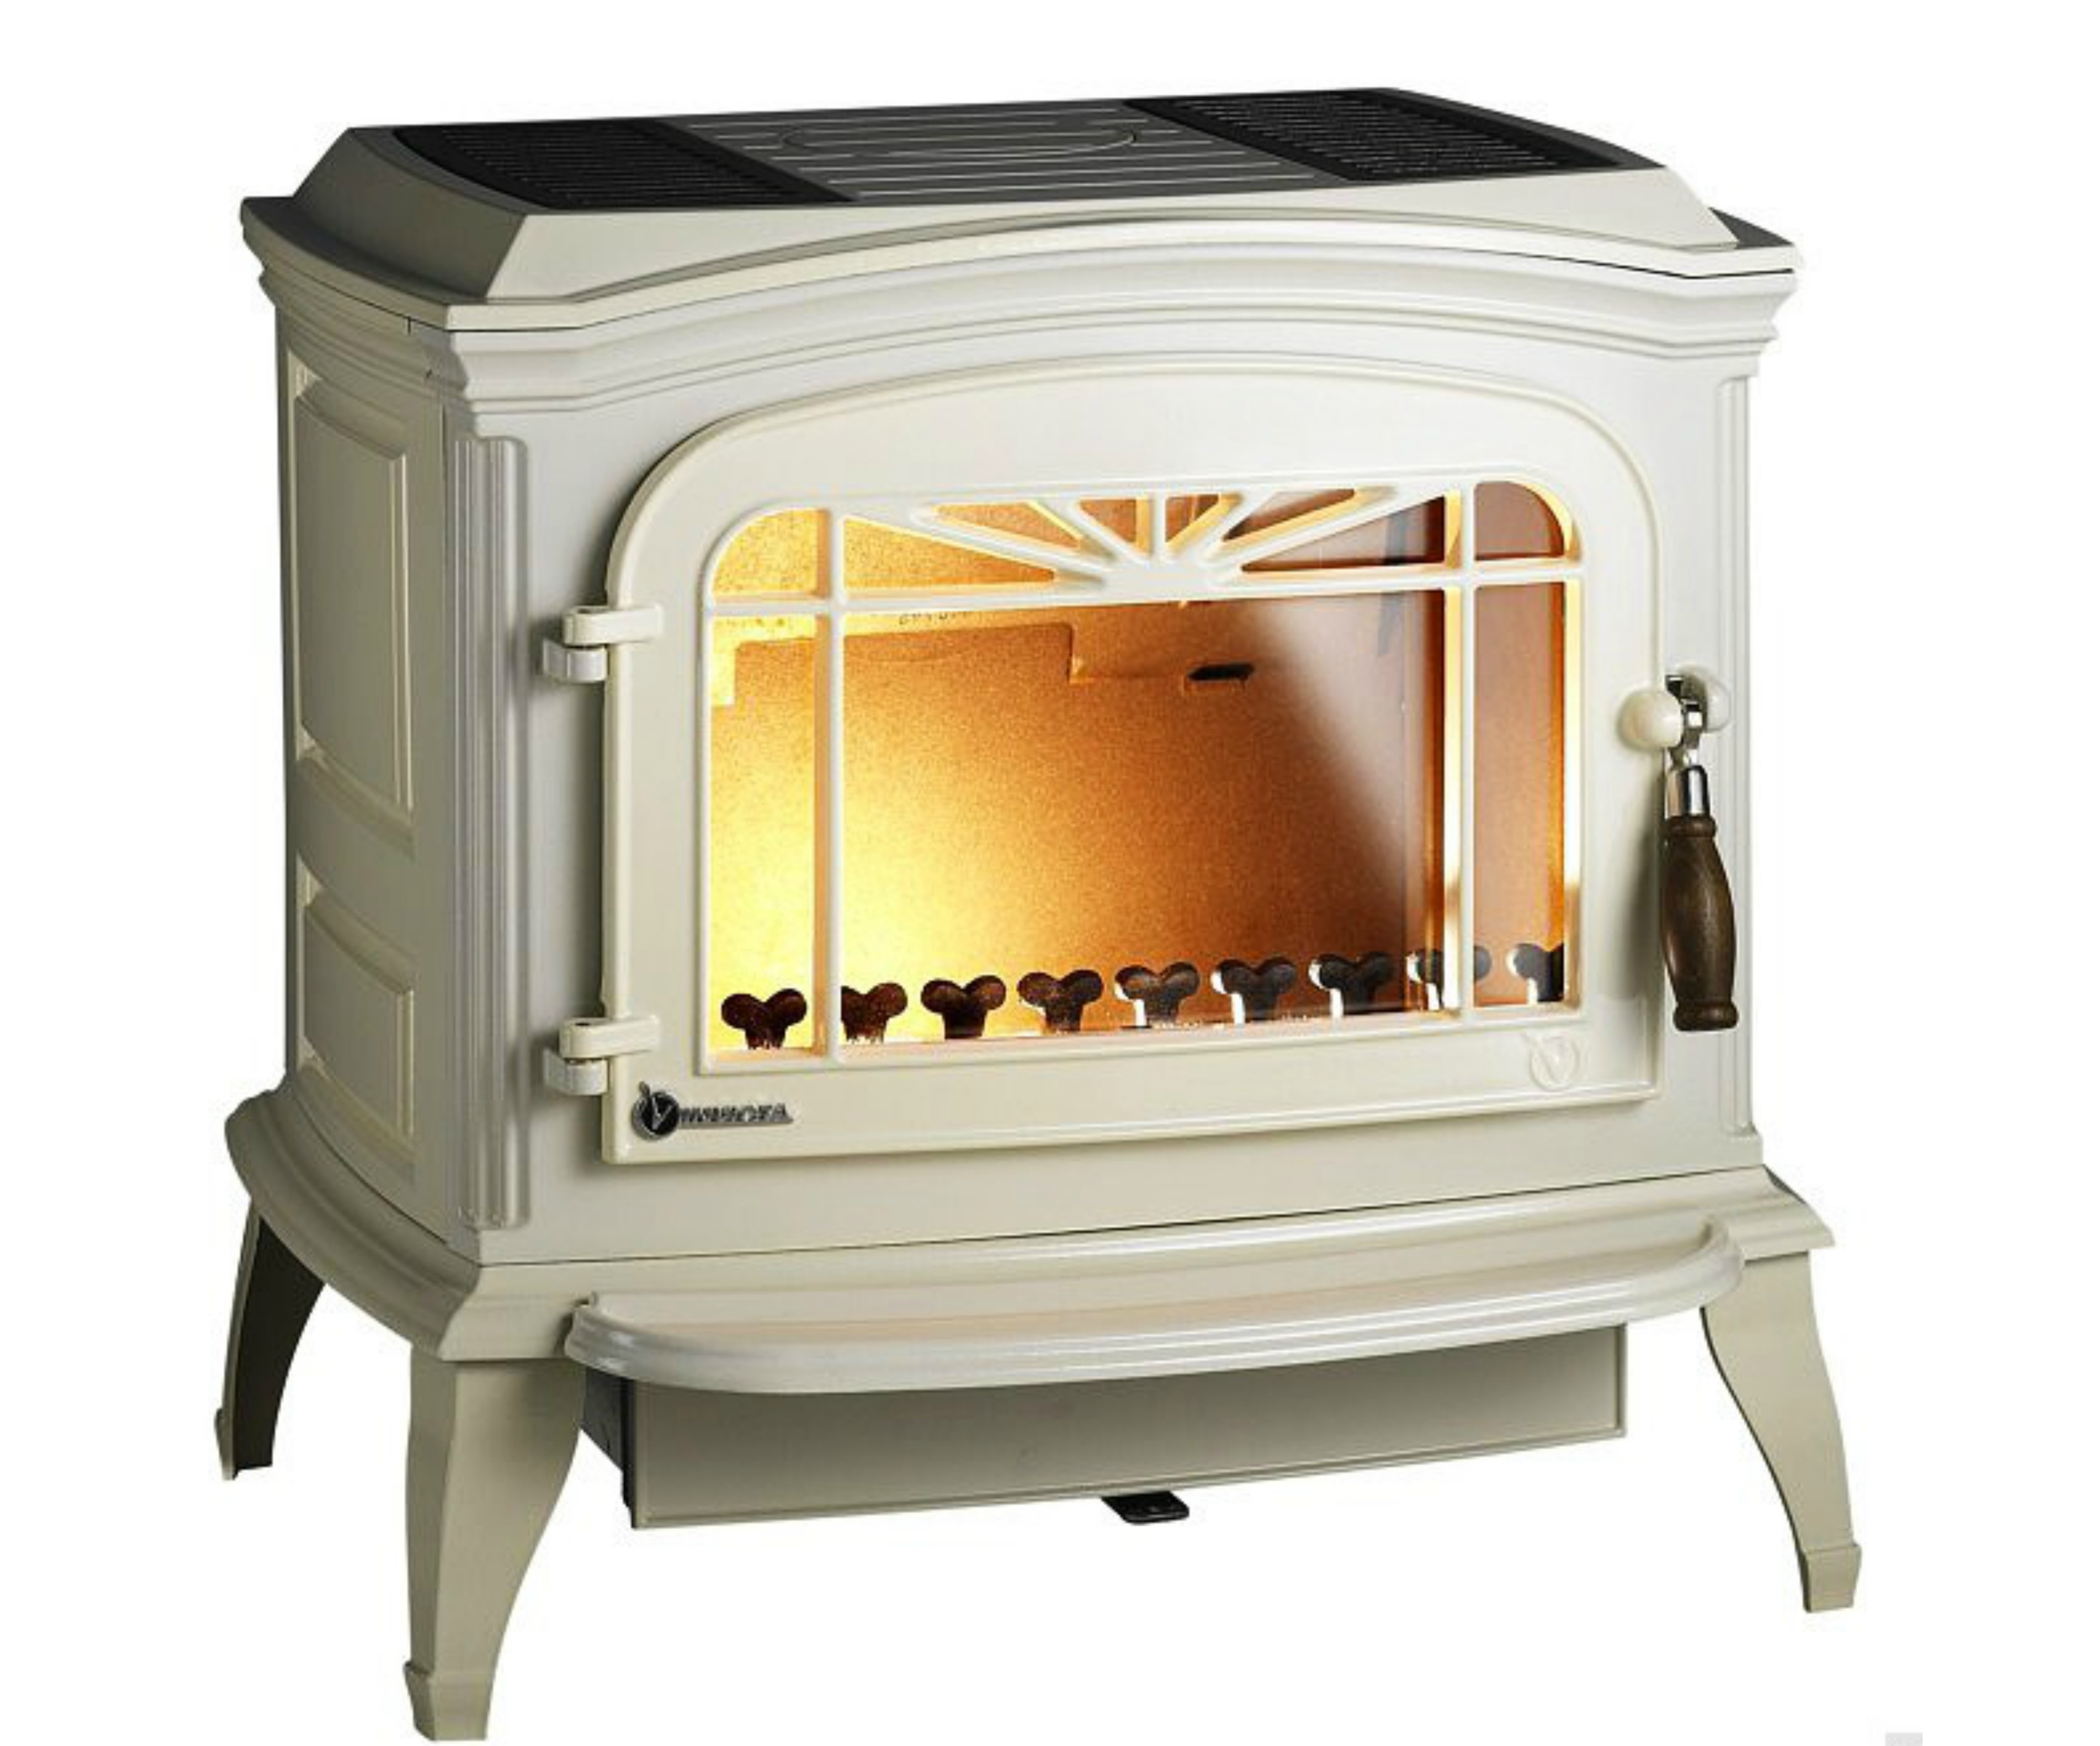 Invicta bradford wood burning stove at stovesellers - Poele a bois double combustion invicta ...